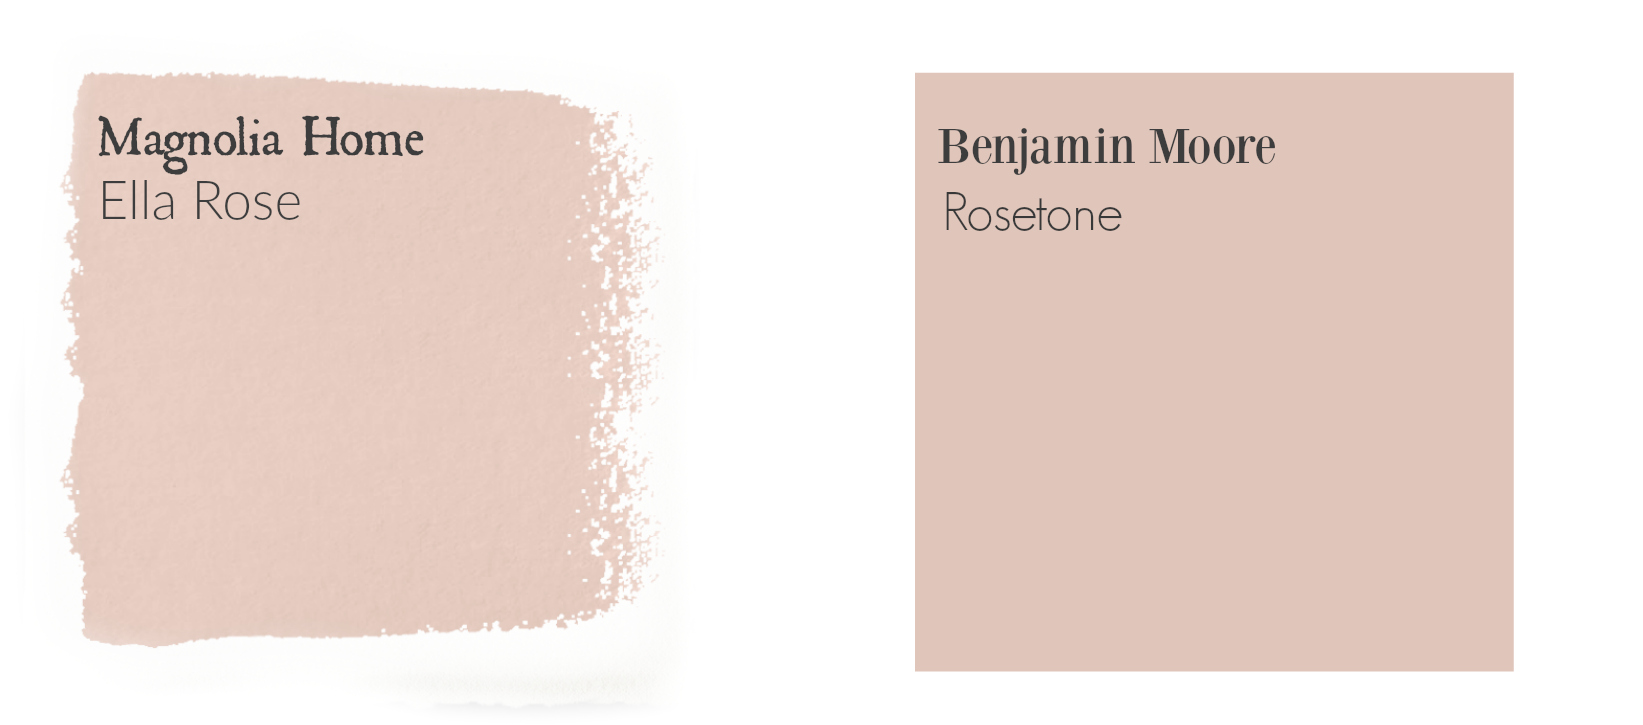 Commona My House Wednesday Inspiration Magnolia Home Paint Colors Colormatched